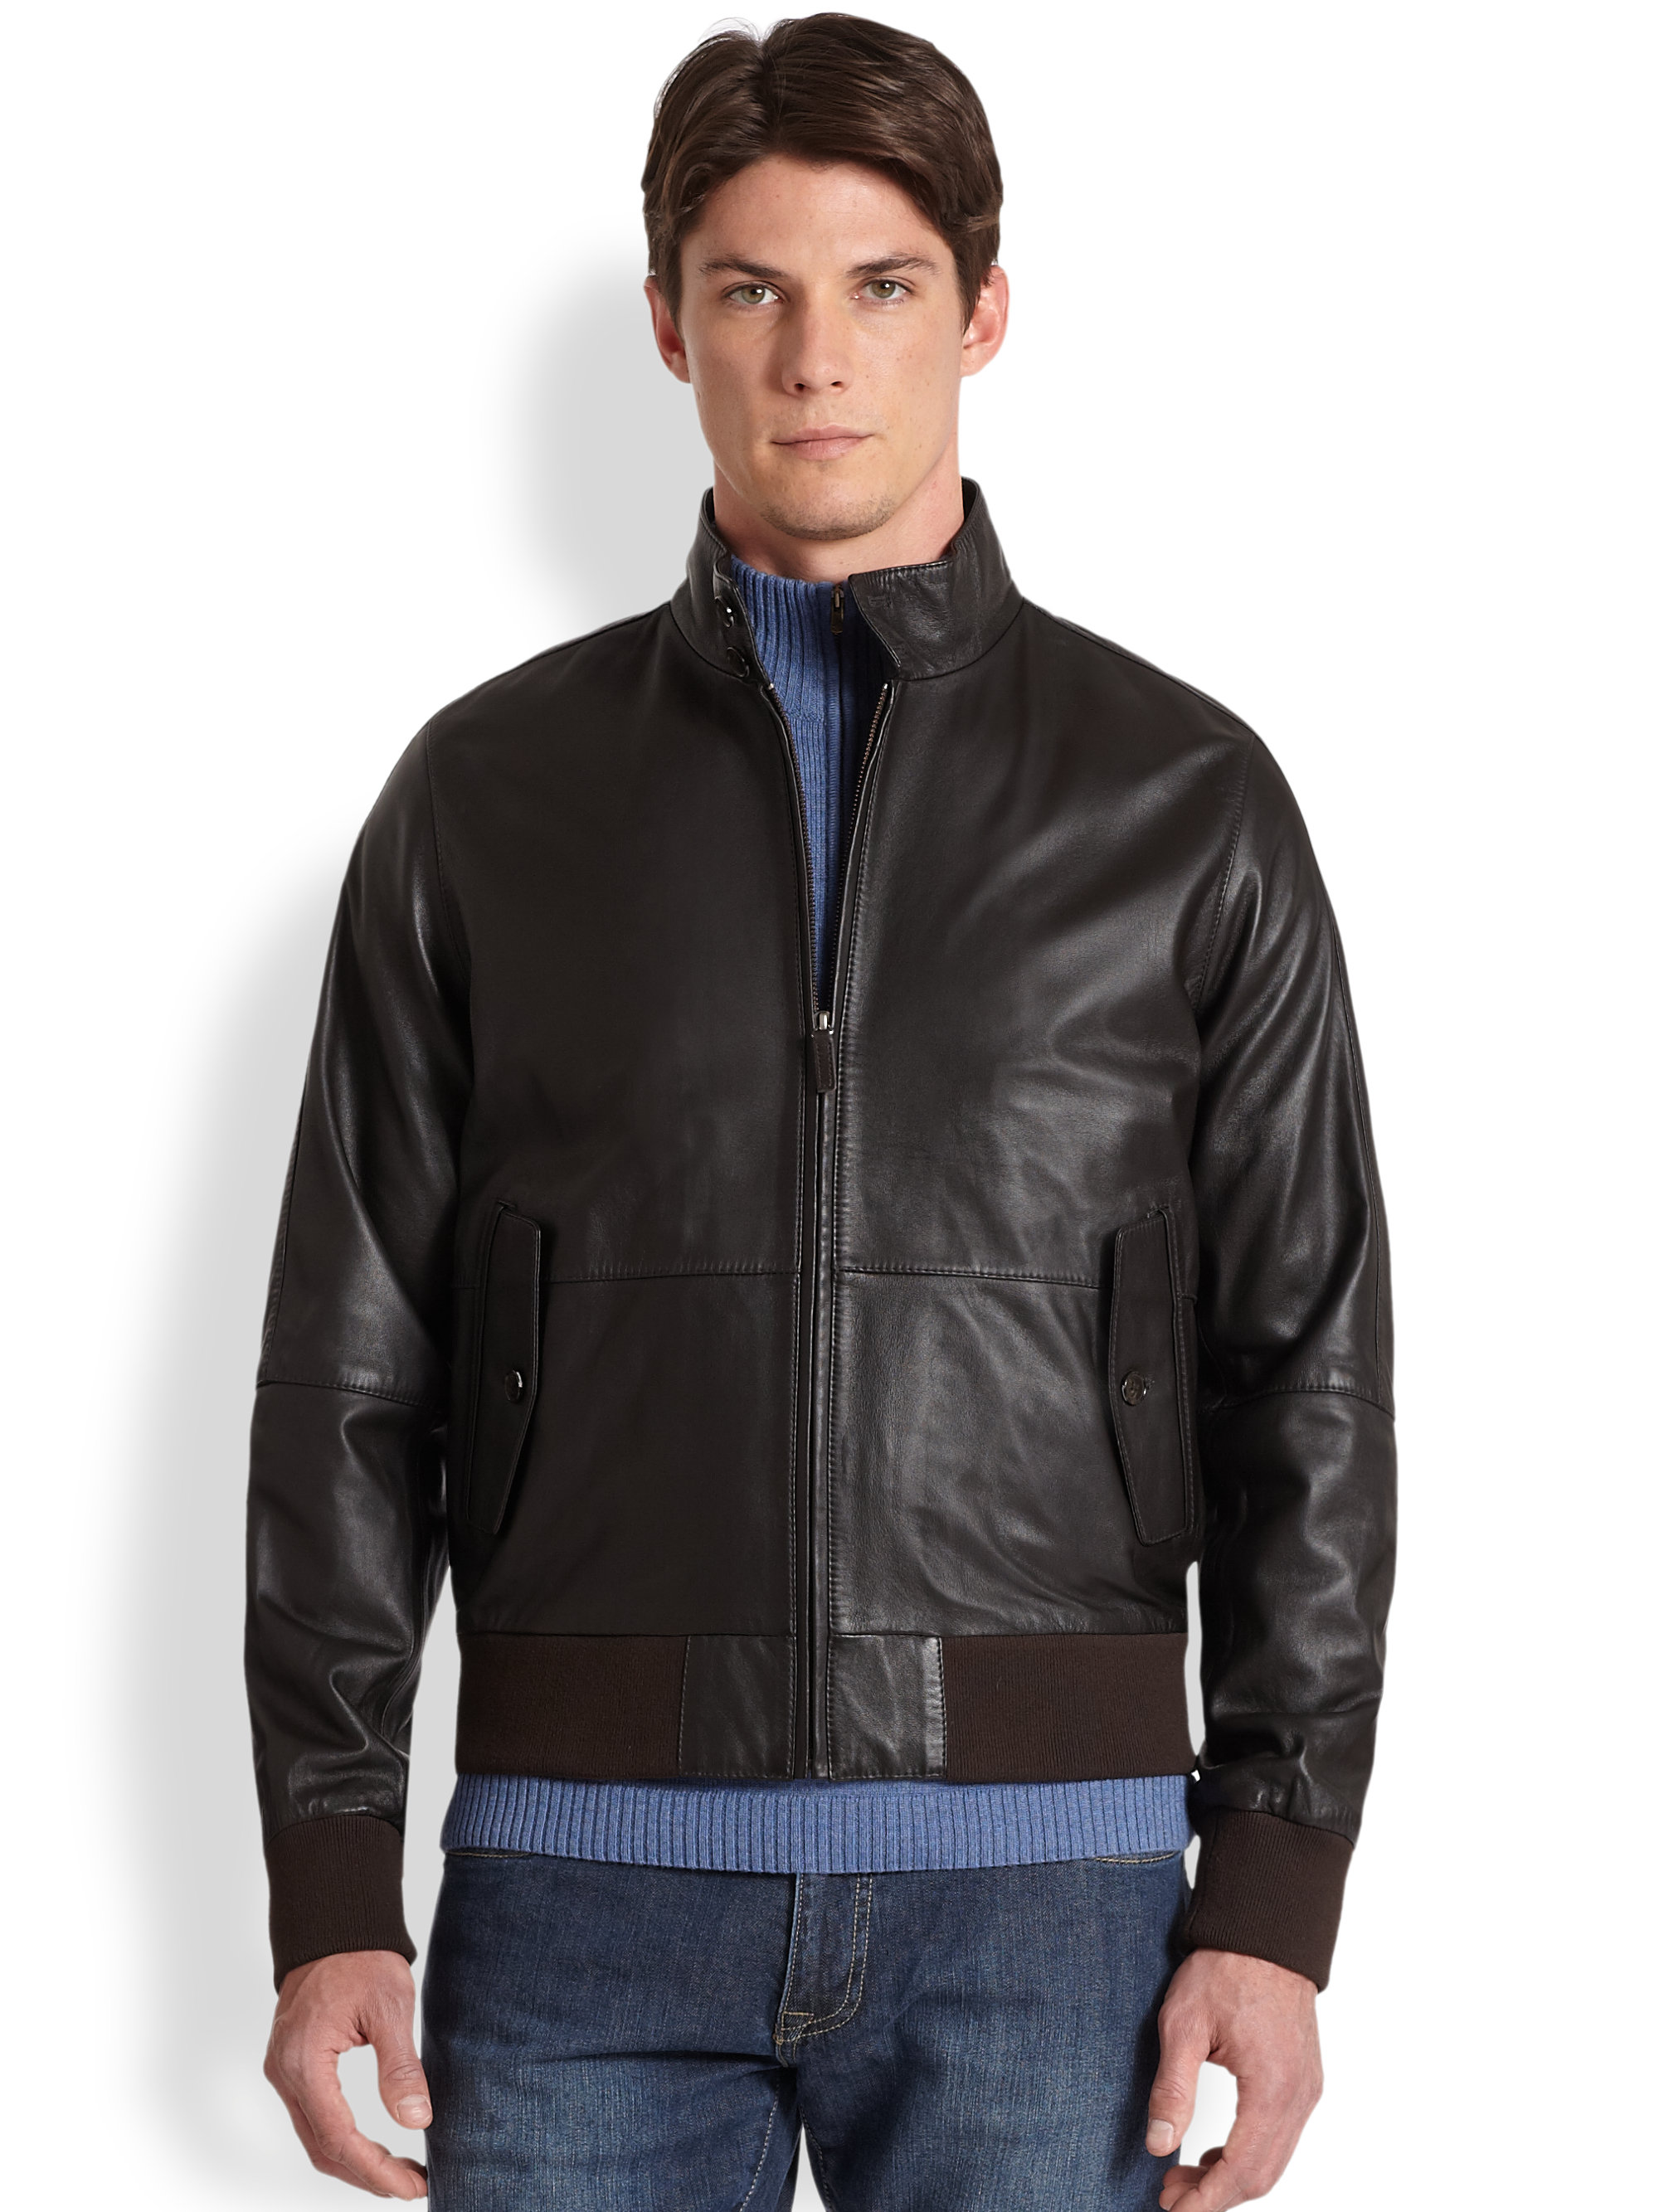 Similiar Men's Leather Bombers Jackets Browns Keywords